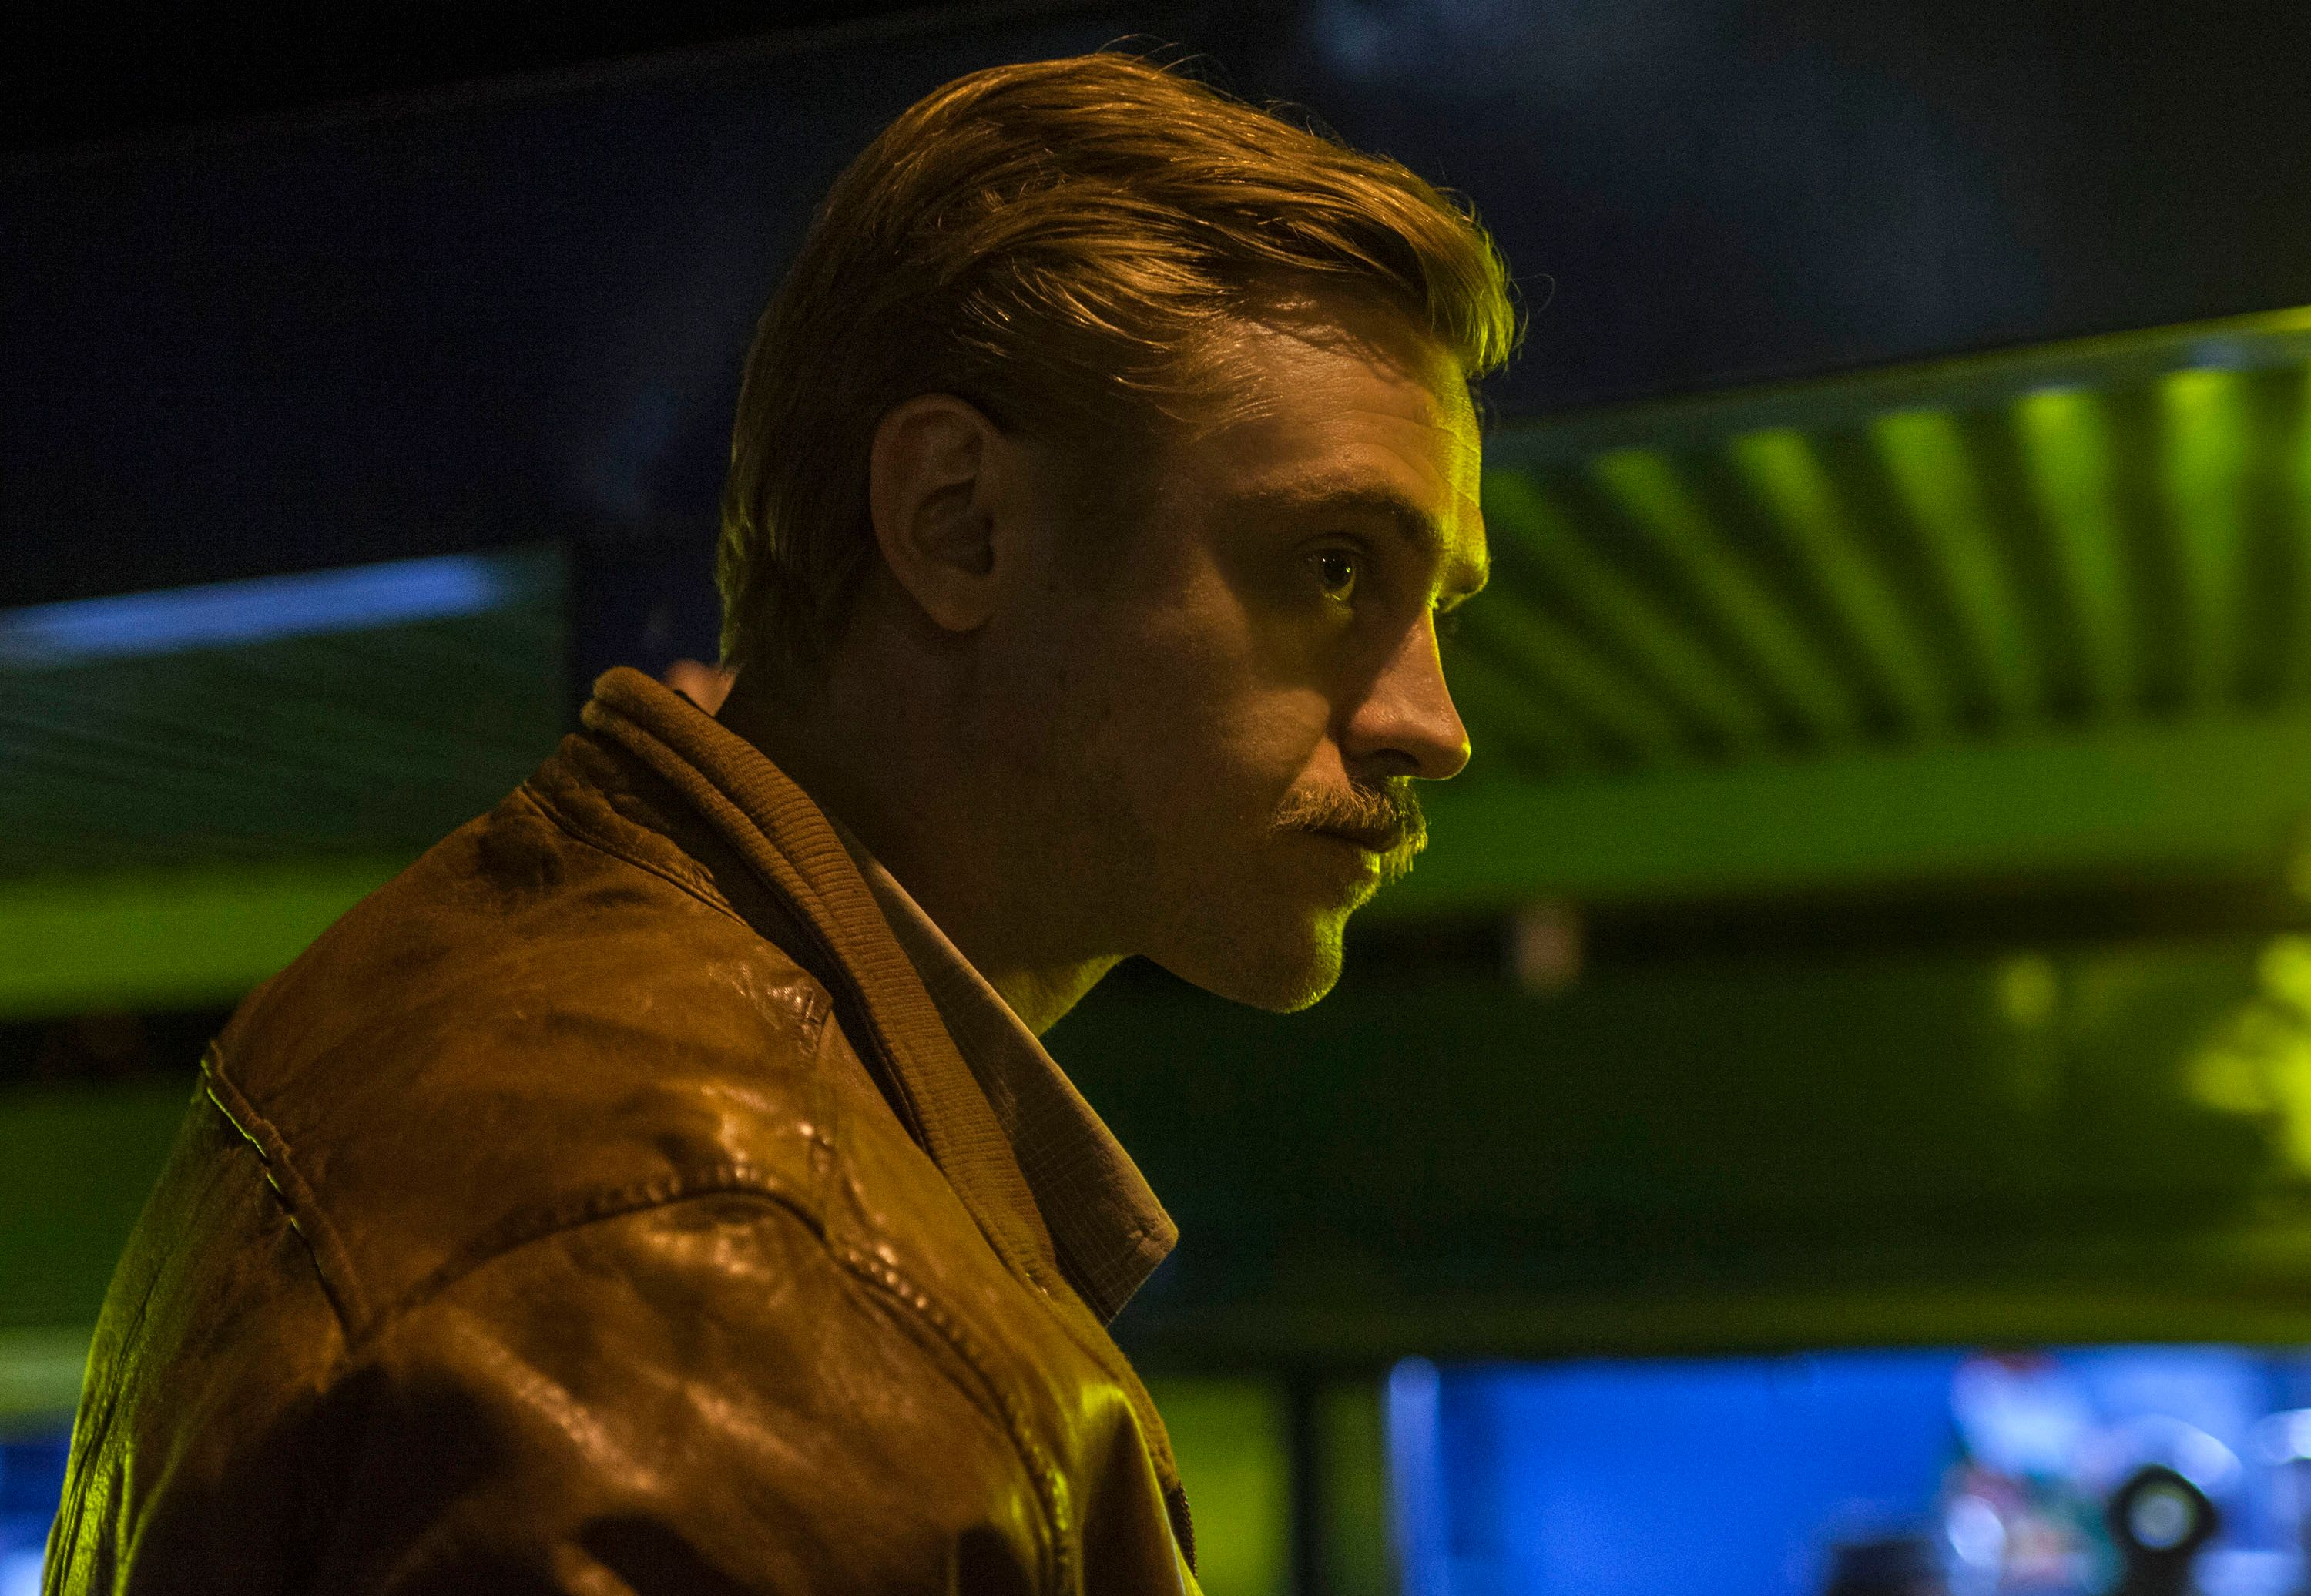 'Narcos' star Boyd Holbrook to essay villain in 'The Wolverine 3'